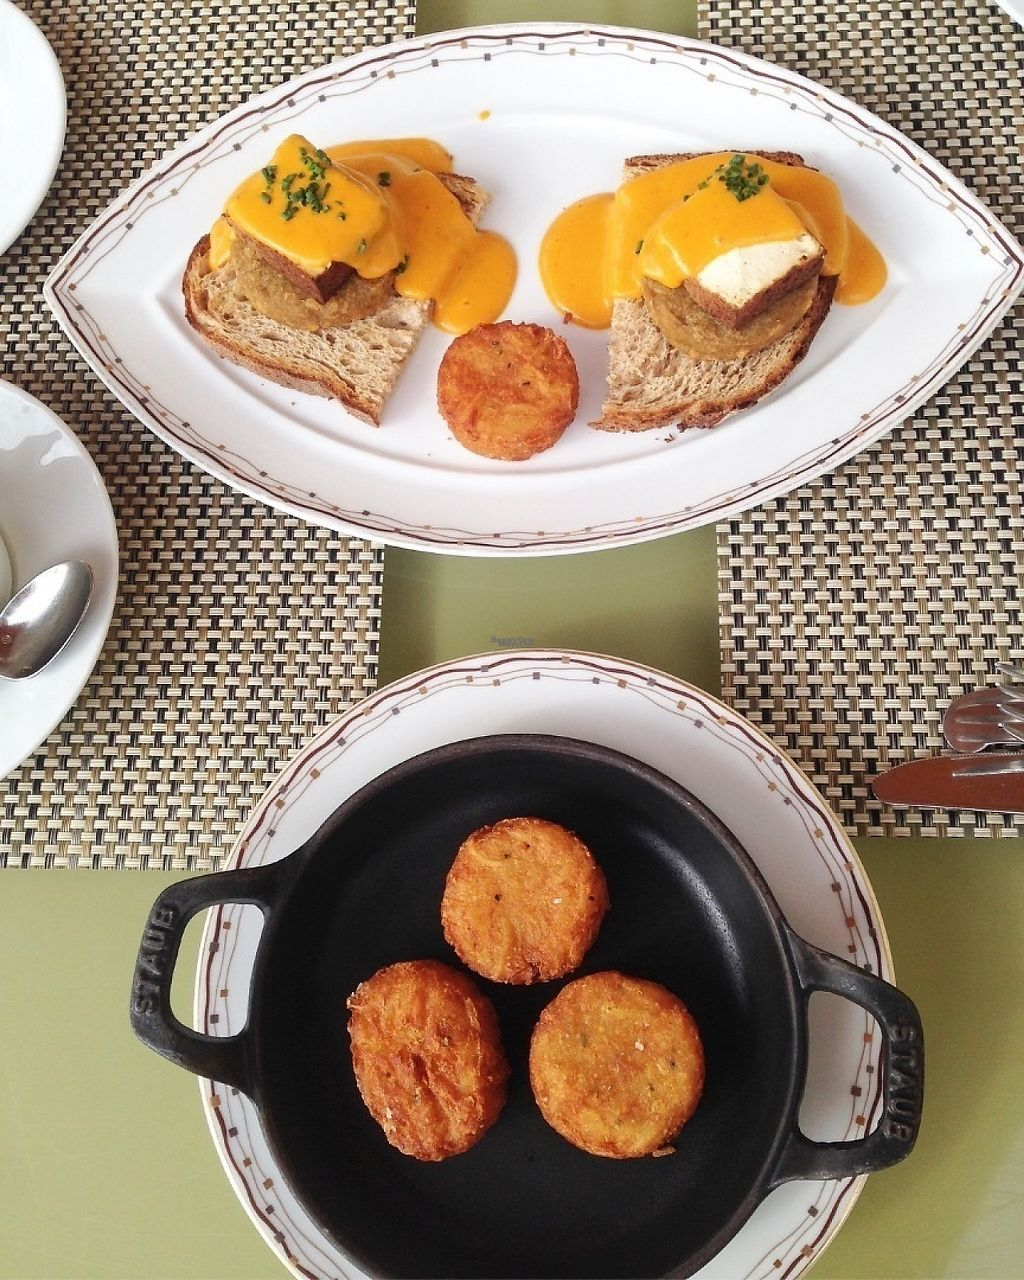 "Photo of Wynn Hotel - Tableau  by <a href=""/members/profile/Veganlove408"">Veganlove408</a> <br/>Eggs Benedict with side of potatoes  <br/> February 13, 2017  - <a href='/contact/abuse/image/72864/226320'>Report</a>"